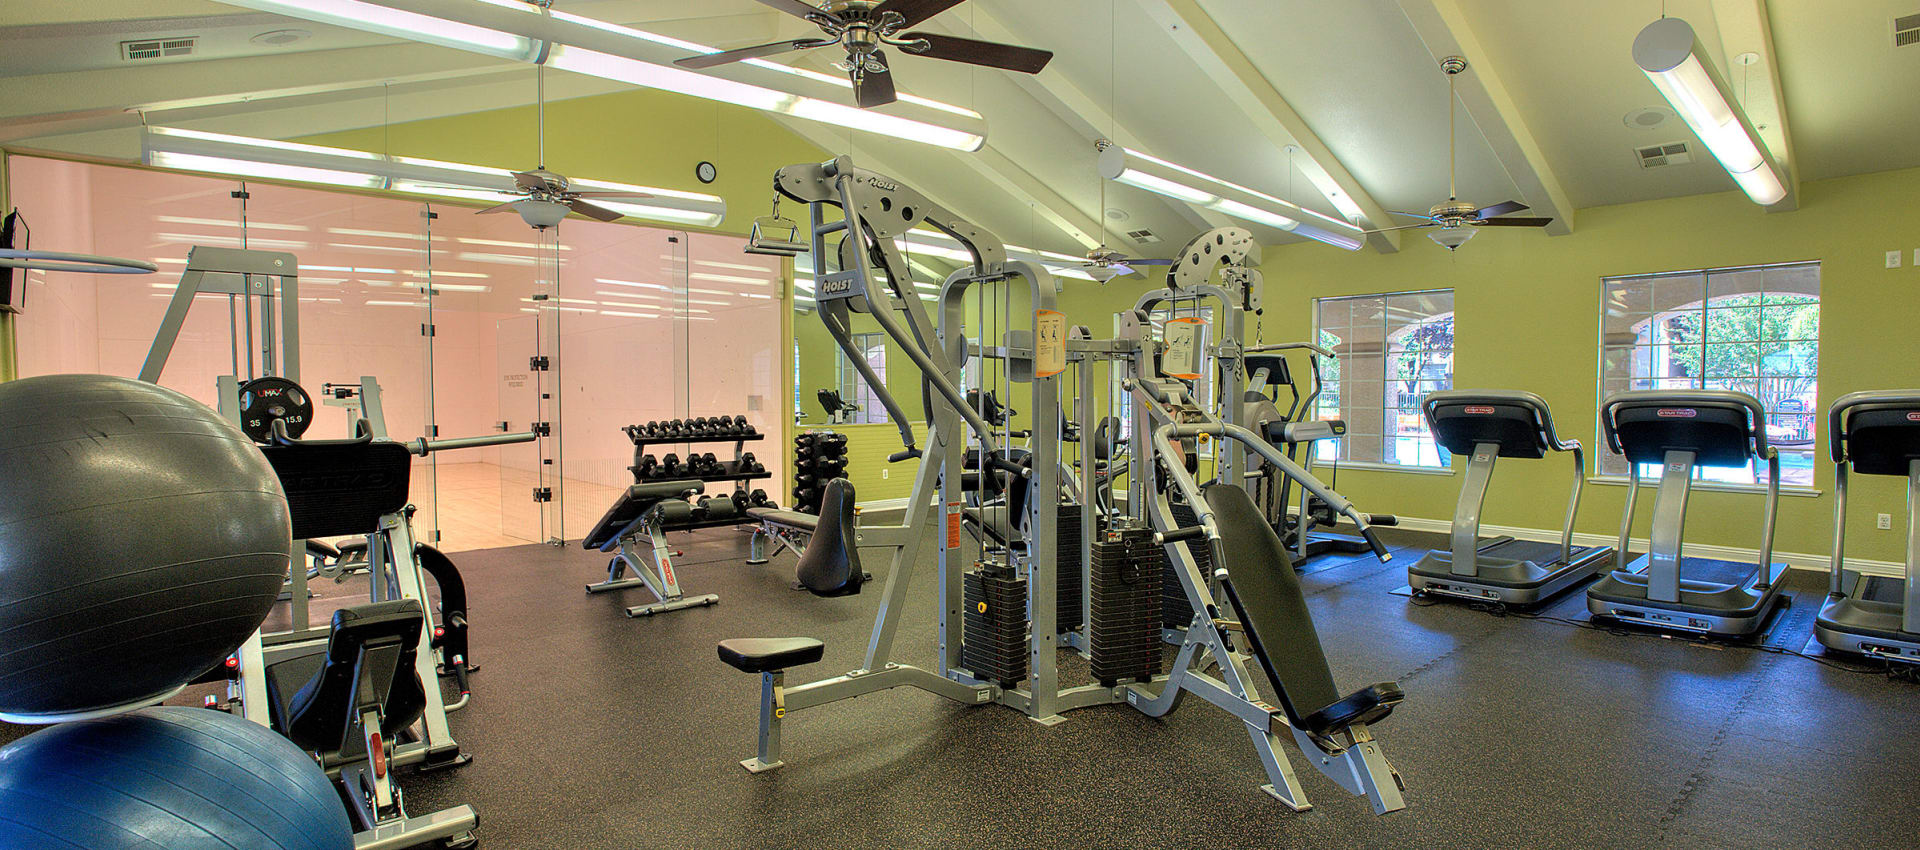 Fitness center at River Oaks Apartment Homes in Vacaville, California